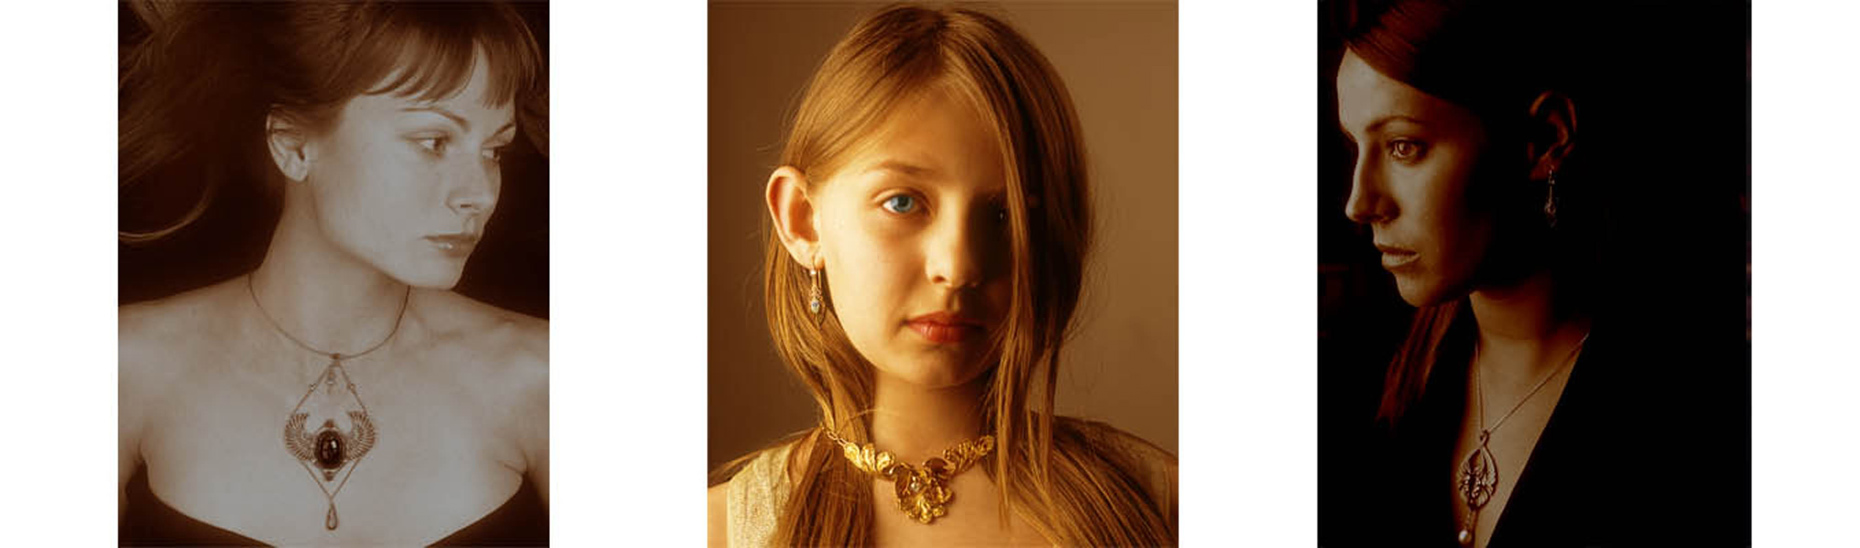 jewlery-portraits-copy